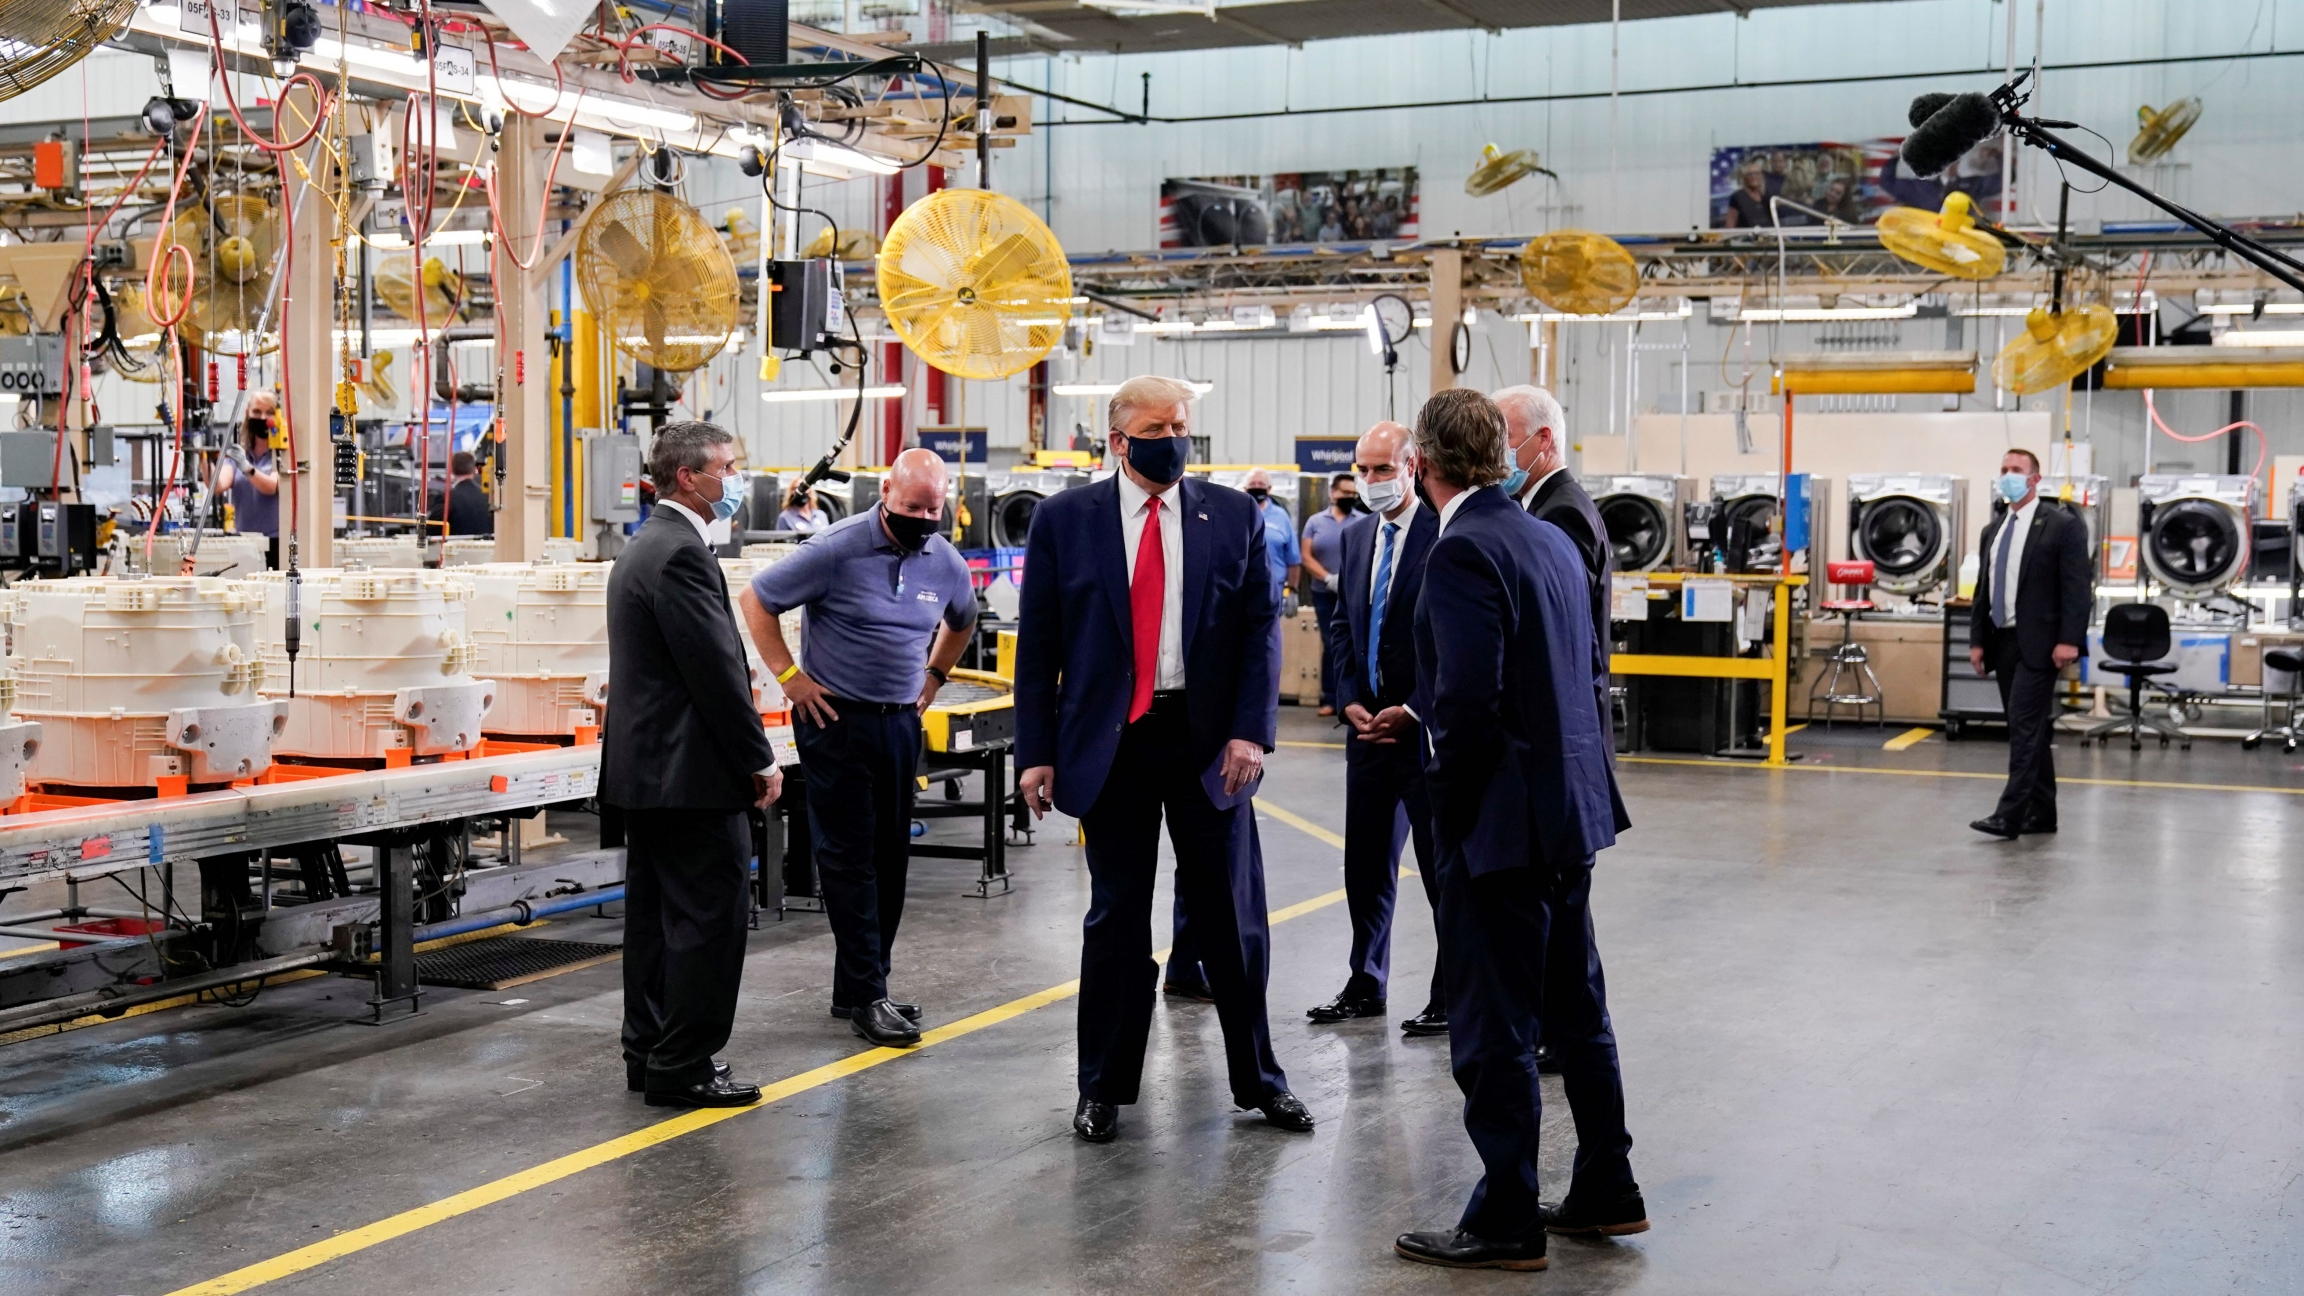 US President DonaldTrumpwears a protective face mask due to the coronavirus disease (COVID-19) pandemic as he tours the assembly line at a Whirlpool Corporation washing machine factory in Clyde, Ohio, Aug.6, 2020.